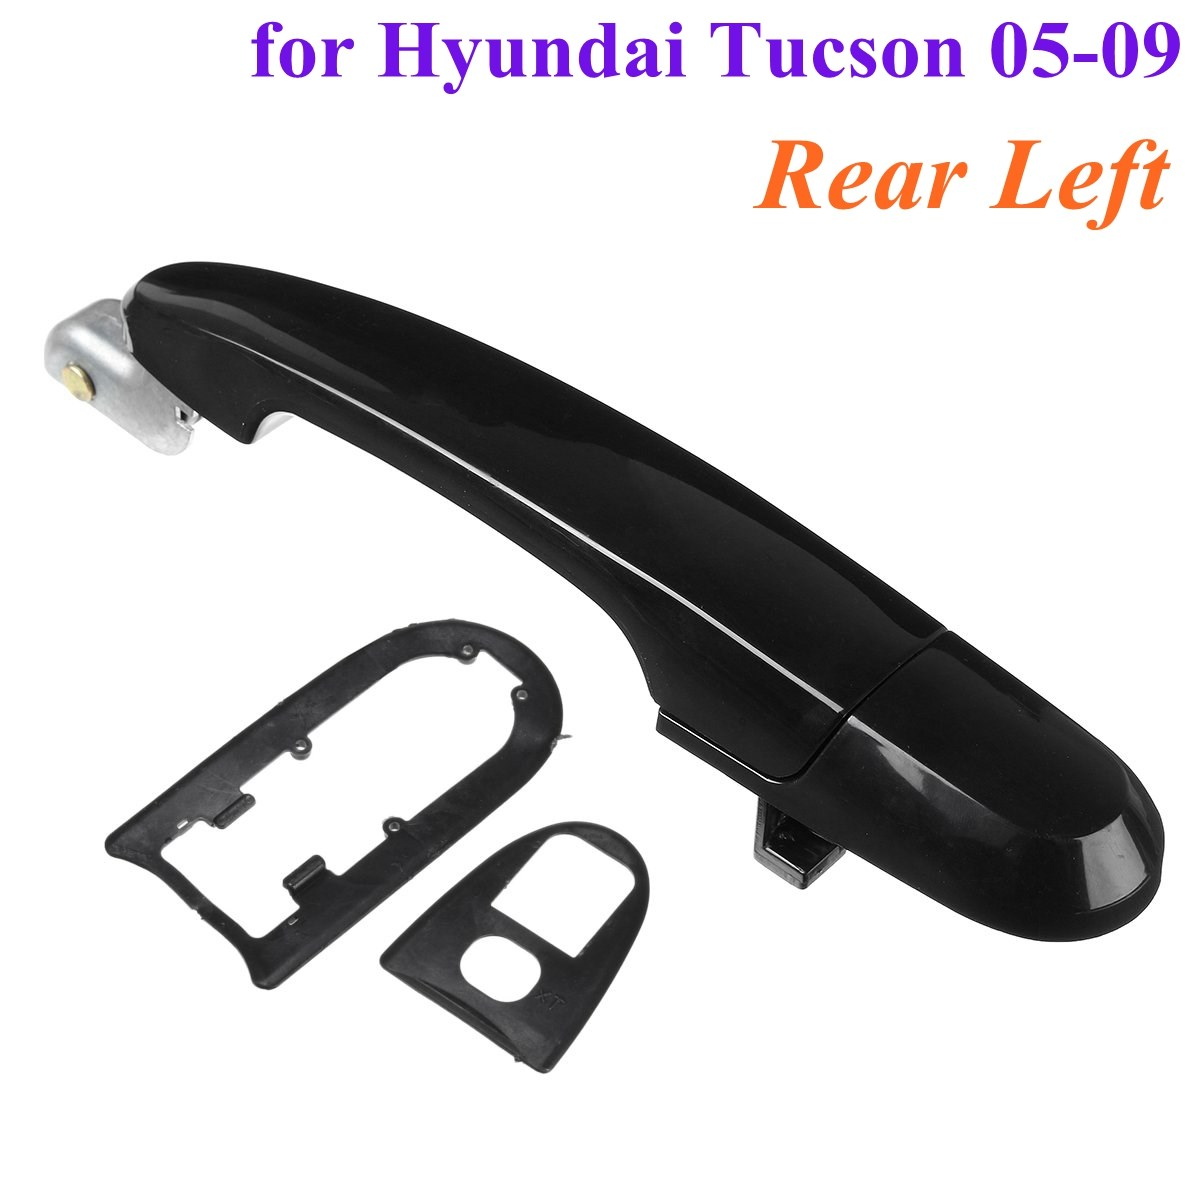 Rear Left Black Car font b Exterior b font Outside Door Handle for Hyundai Tucson 2005